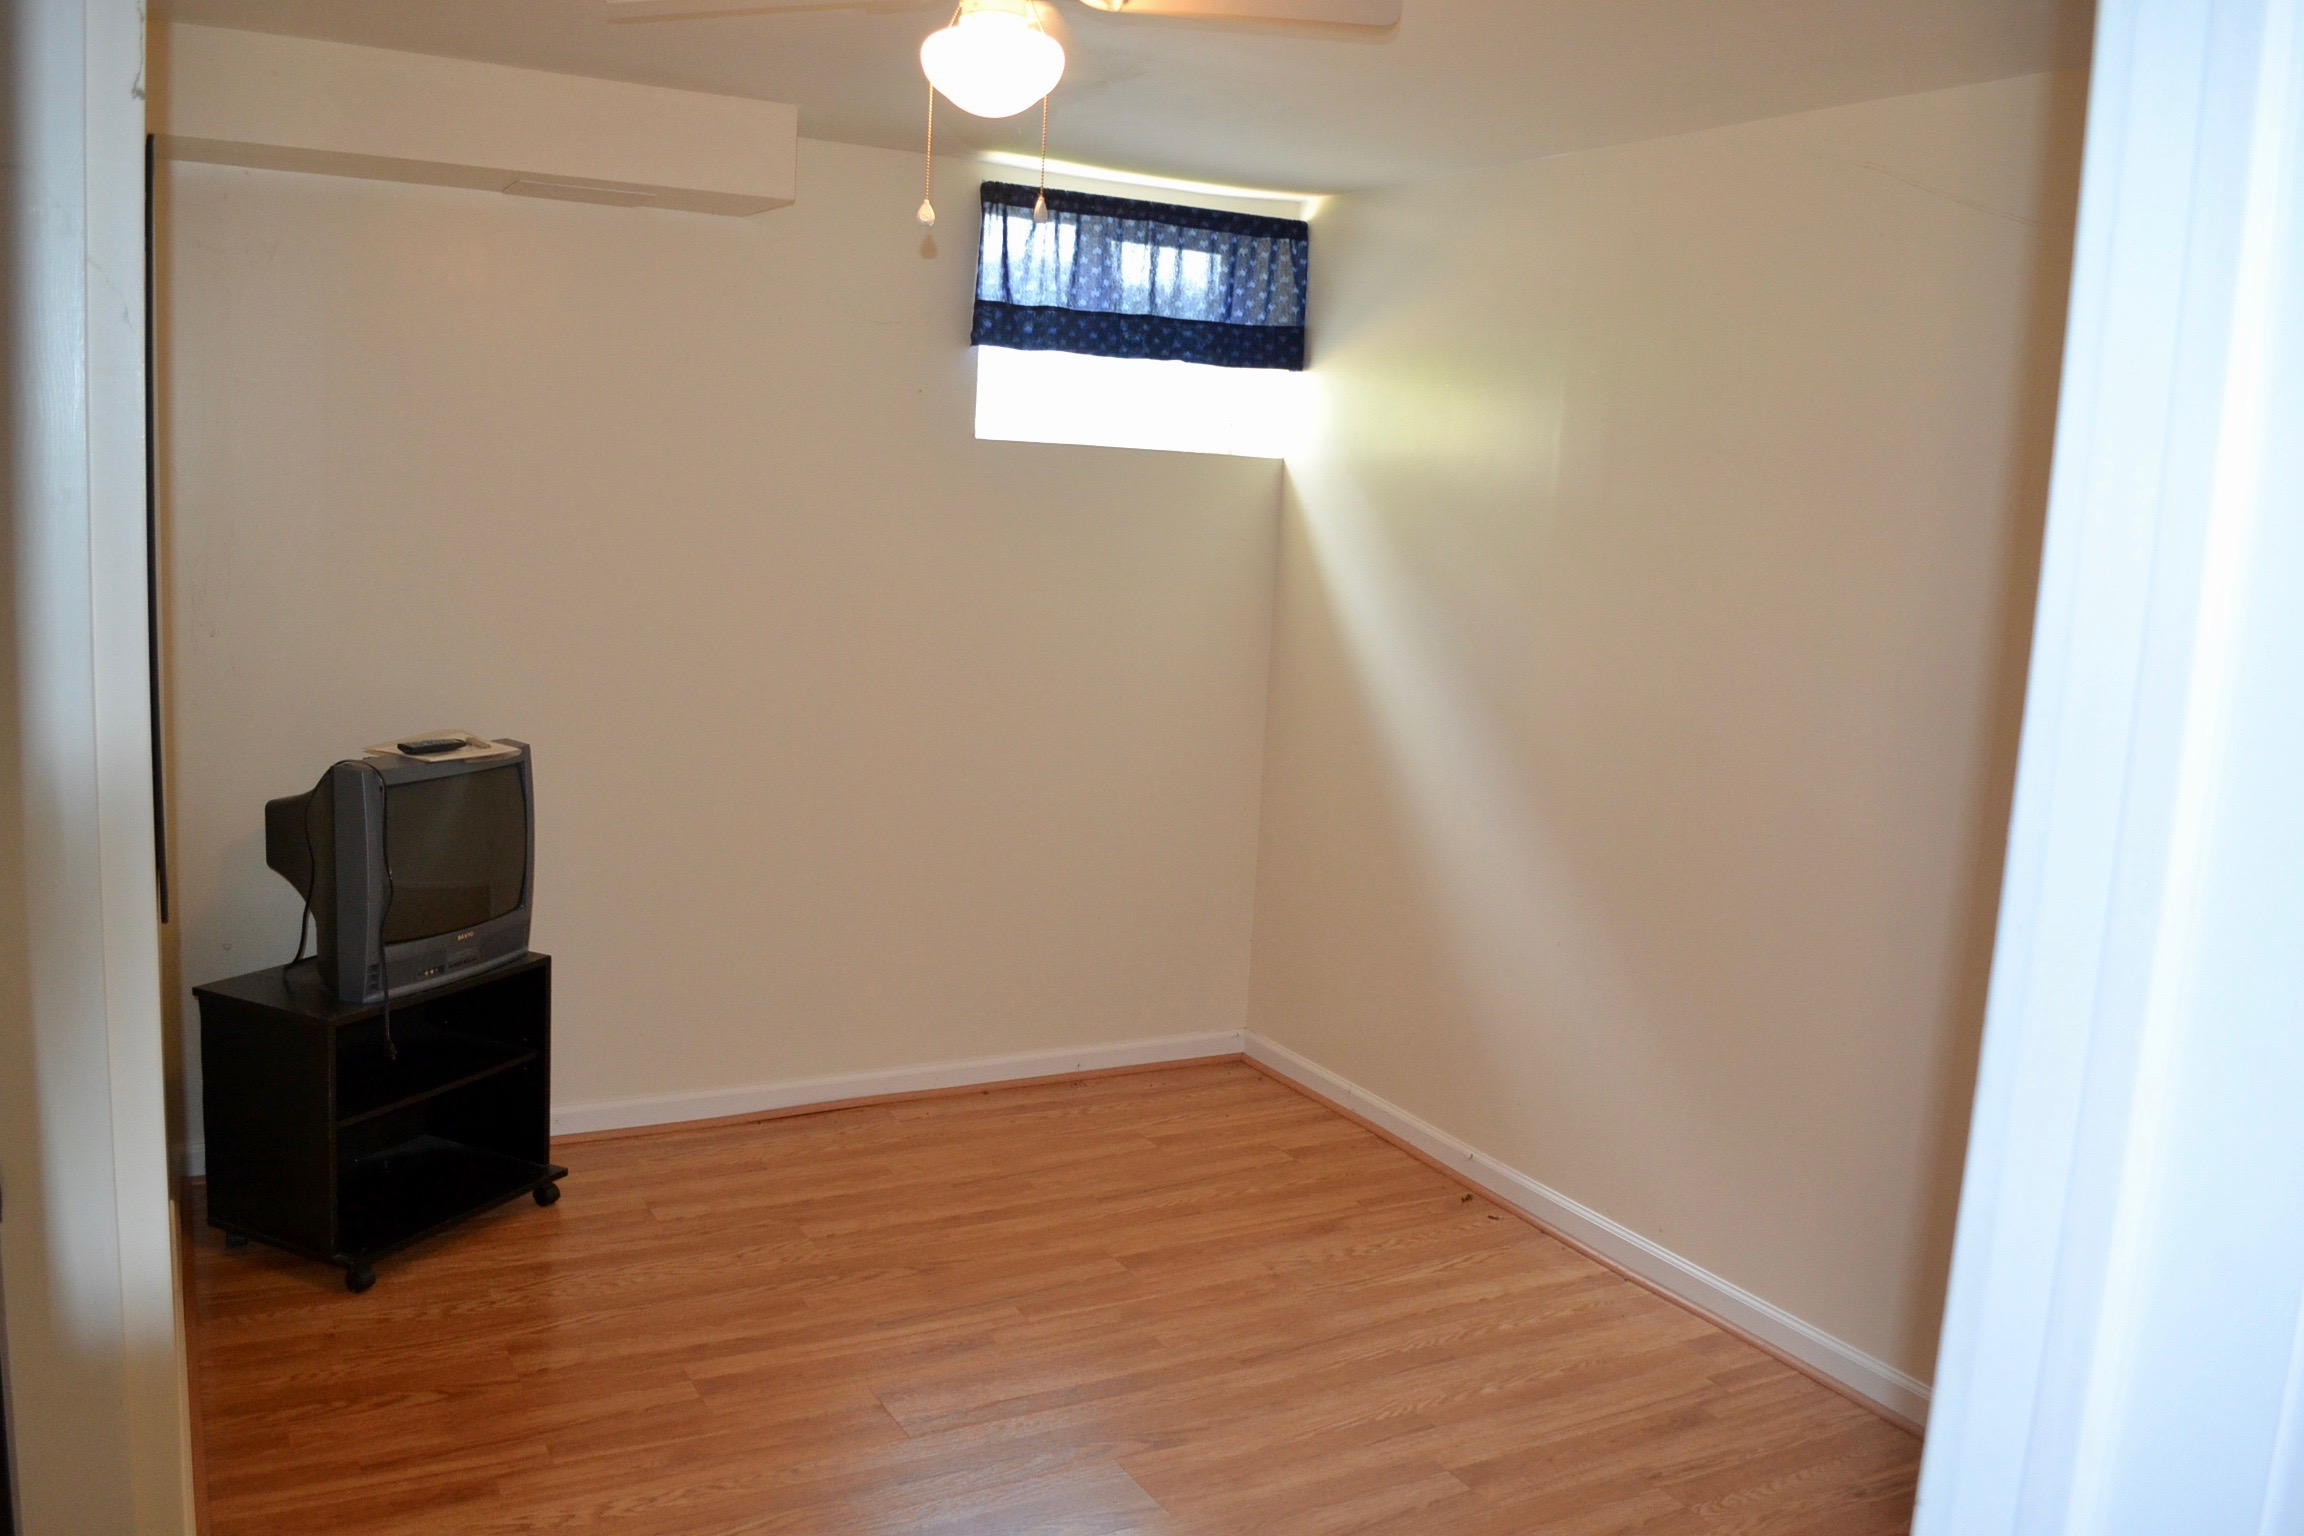 Basement-Finished Room 1-1.jpg